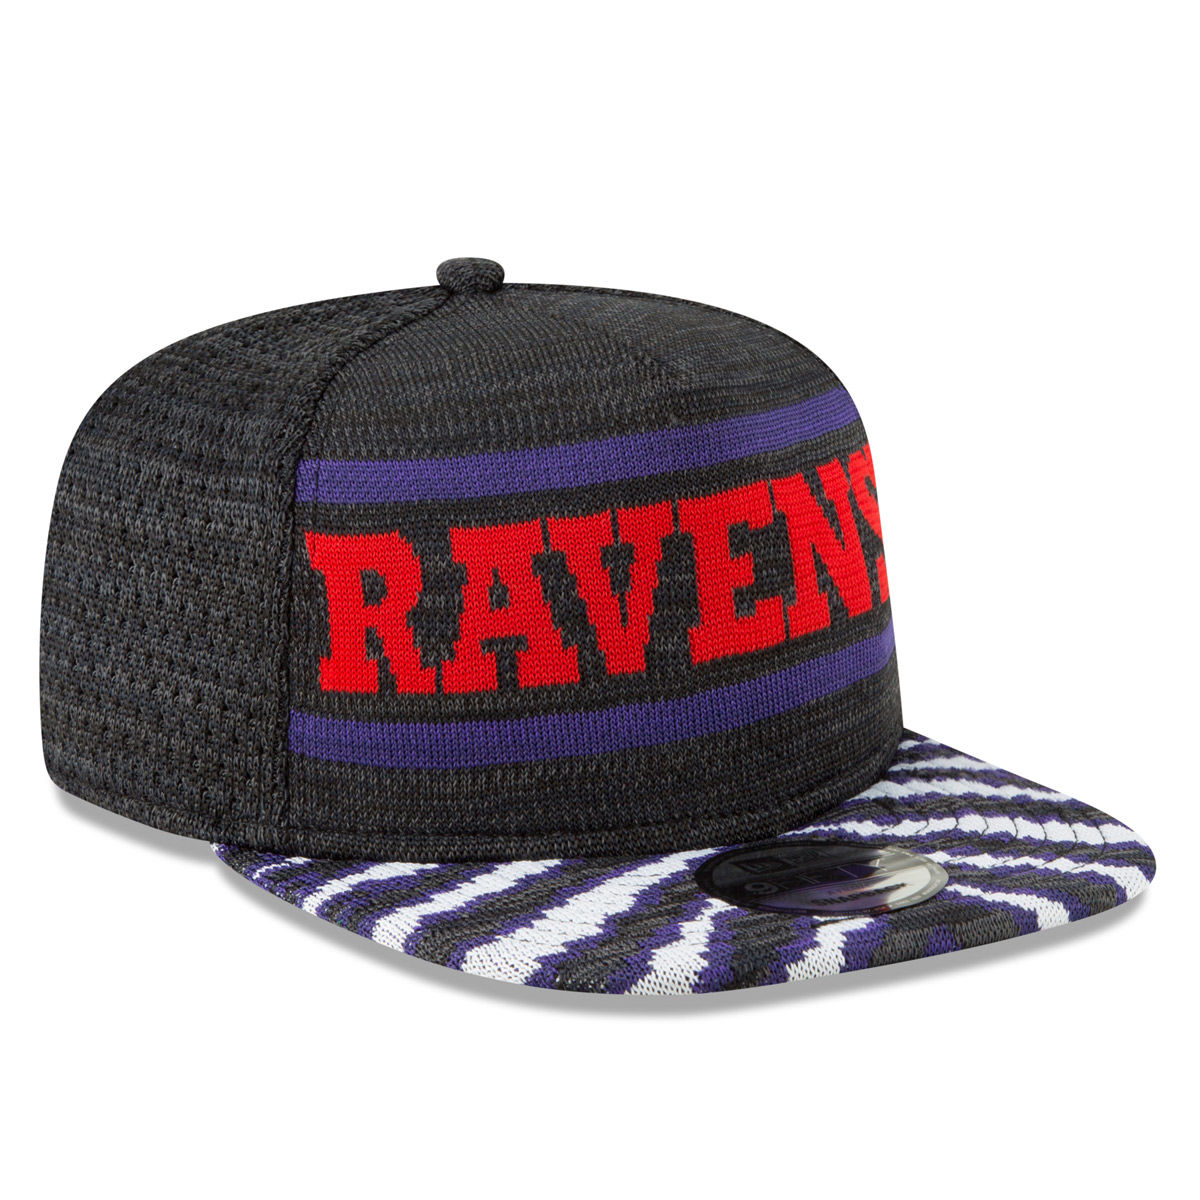 Baltimore Ravens Adult Zubaz 9FIFTY Snapback Hat